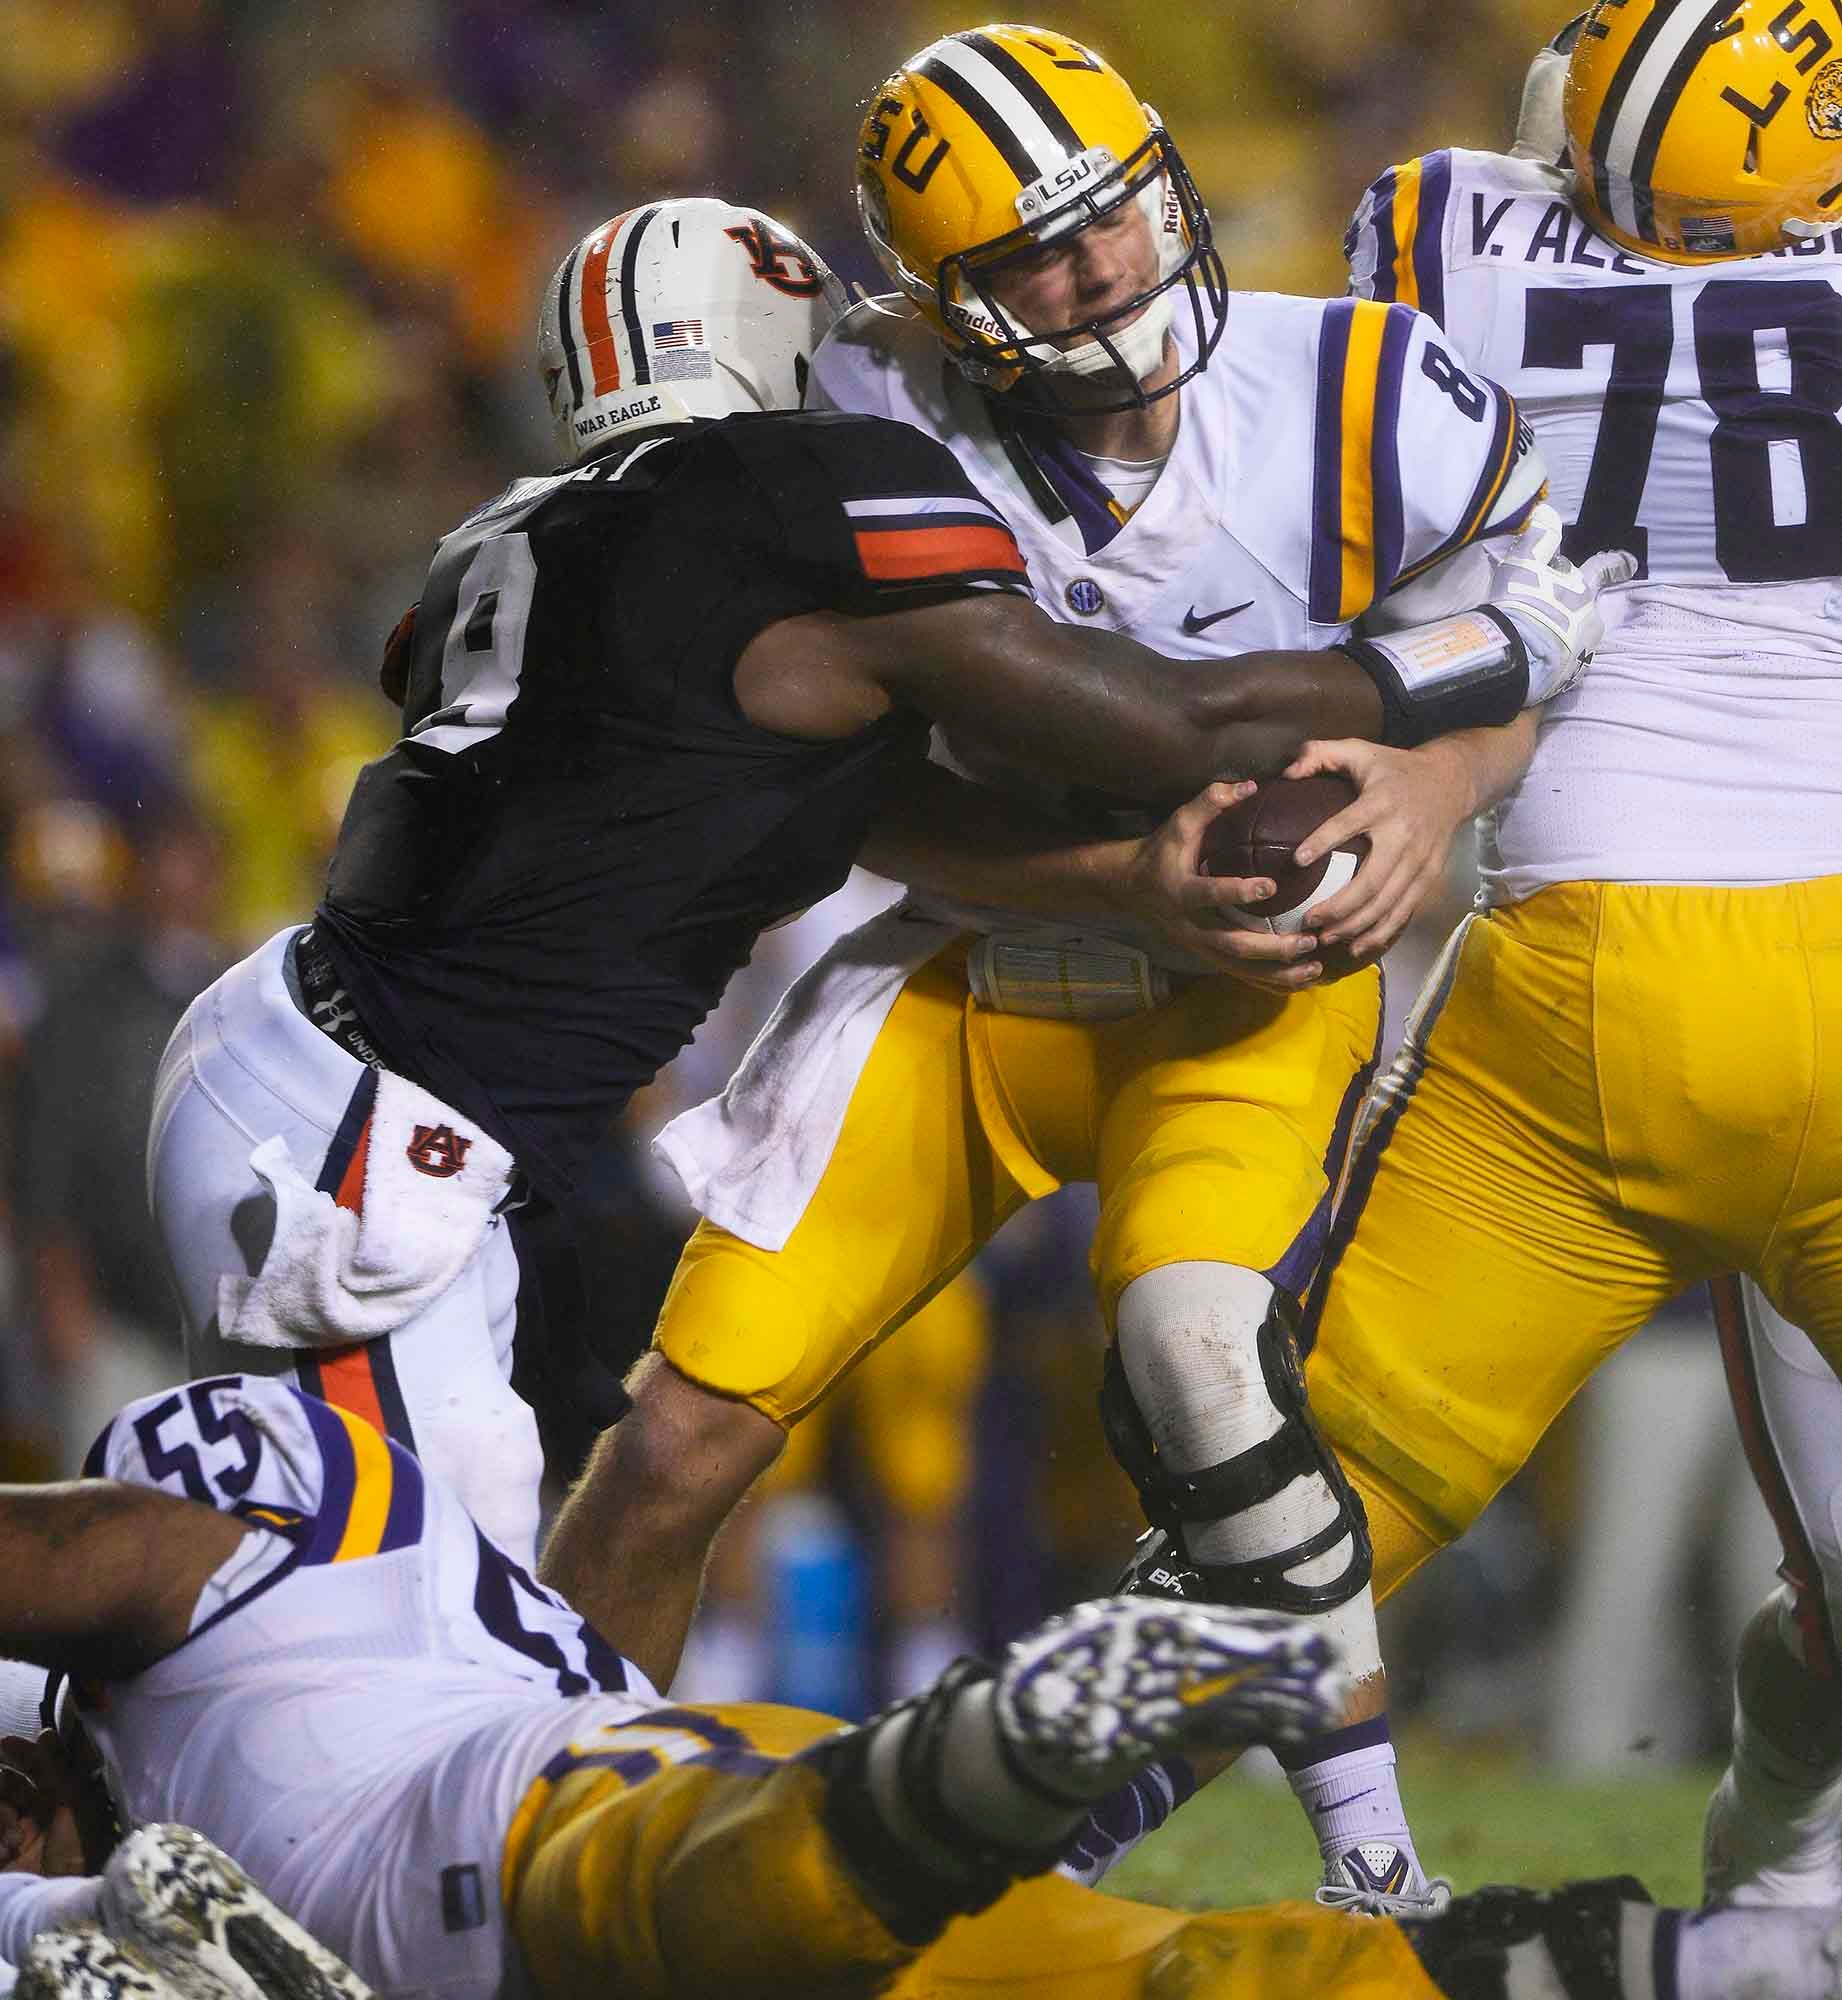 Auburn made some good plays against LSU, including this sack of quarterback Zach Mettenberger that contributed to his -7 rus